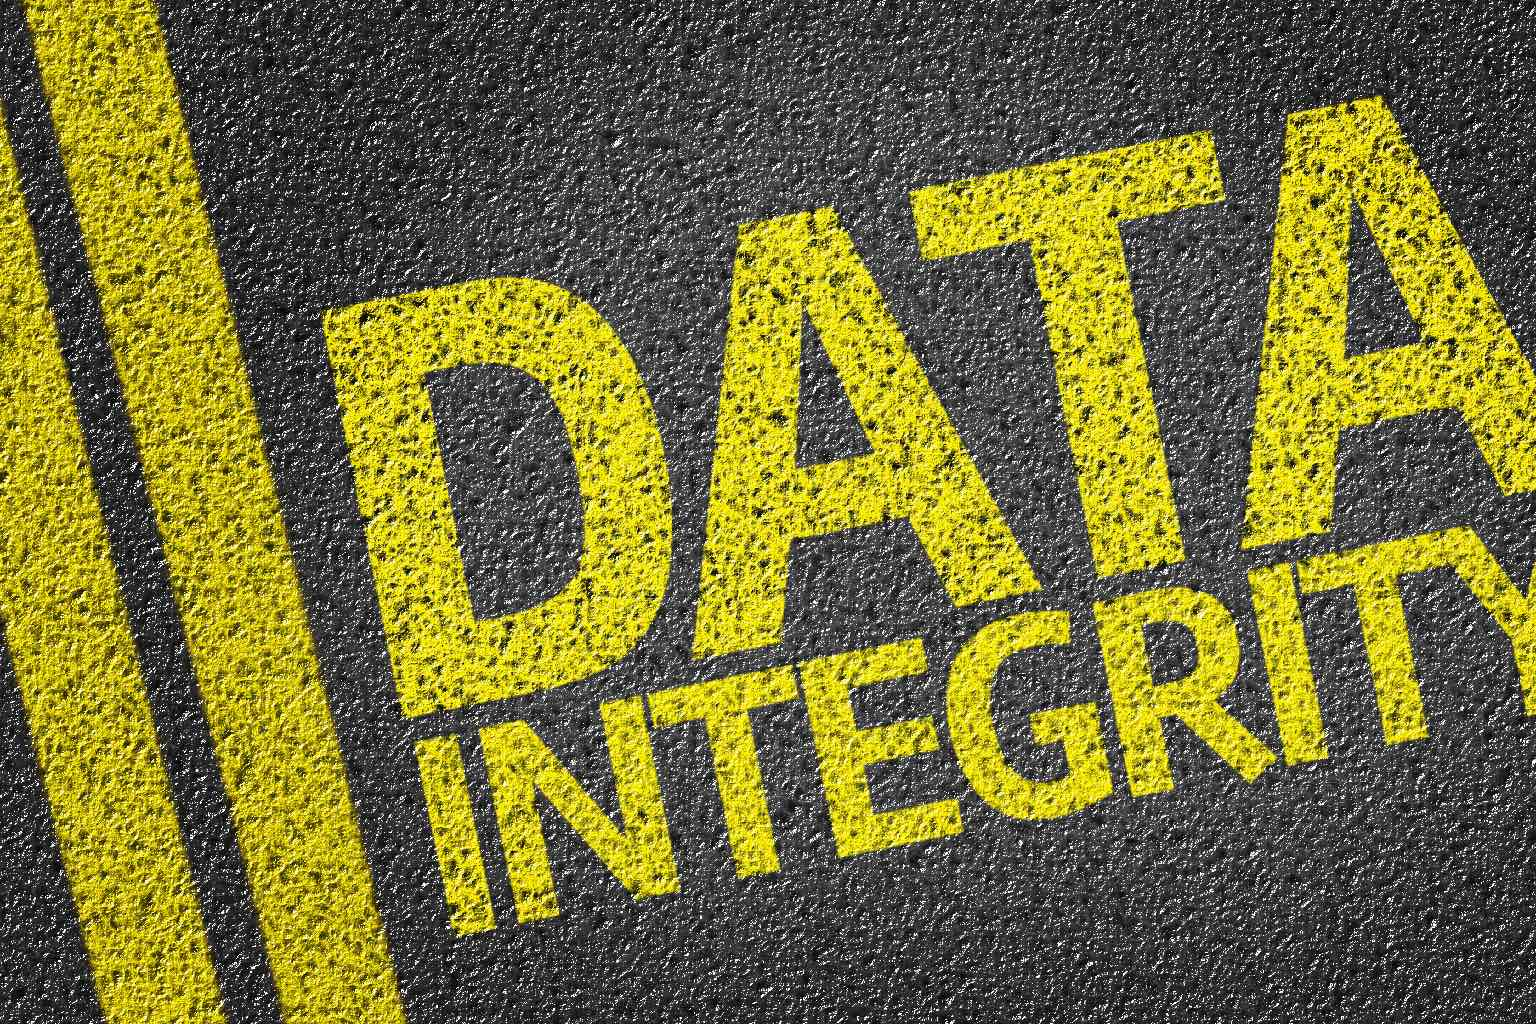 """The words """"DATA INTEGRITY"""" written on the road in yellow beside double yellow lines"""